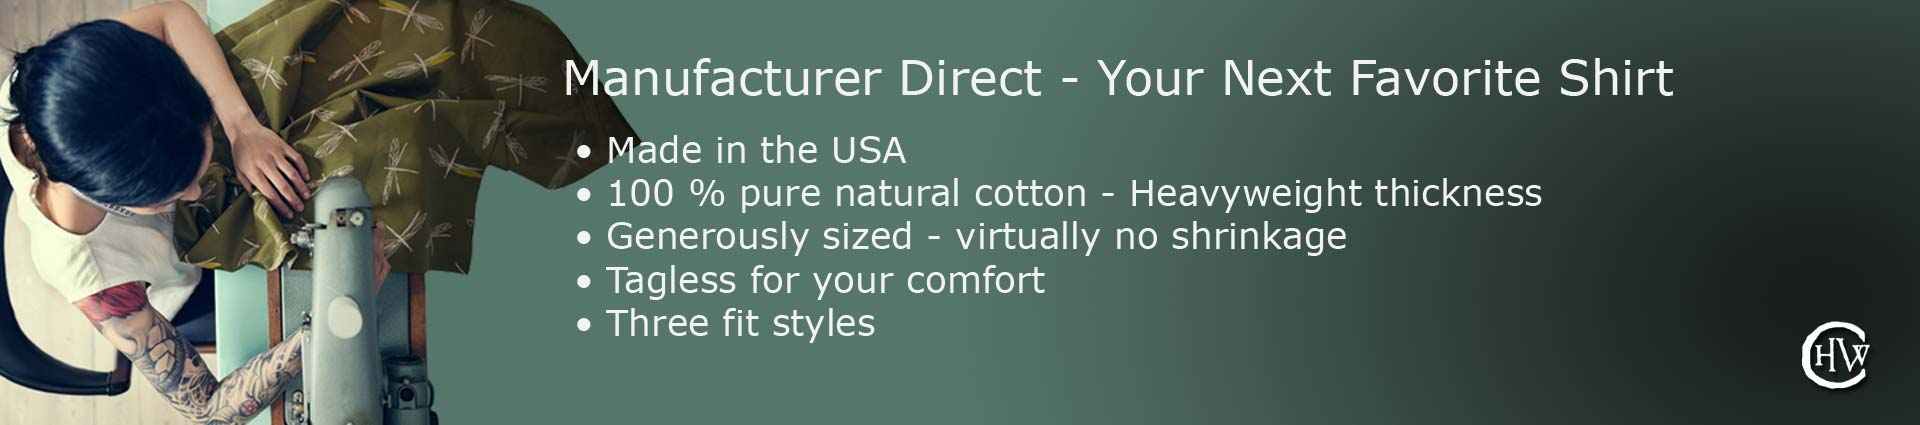 Manufacture Direct Men's T-Shirts. Made in the USA, Save by eliminating the middle man.